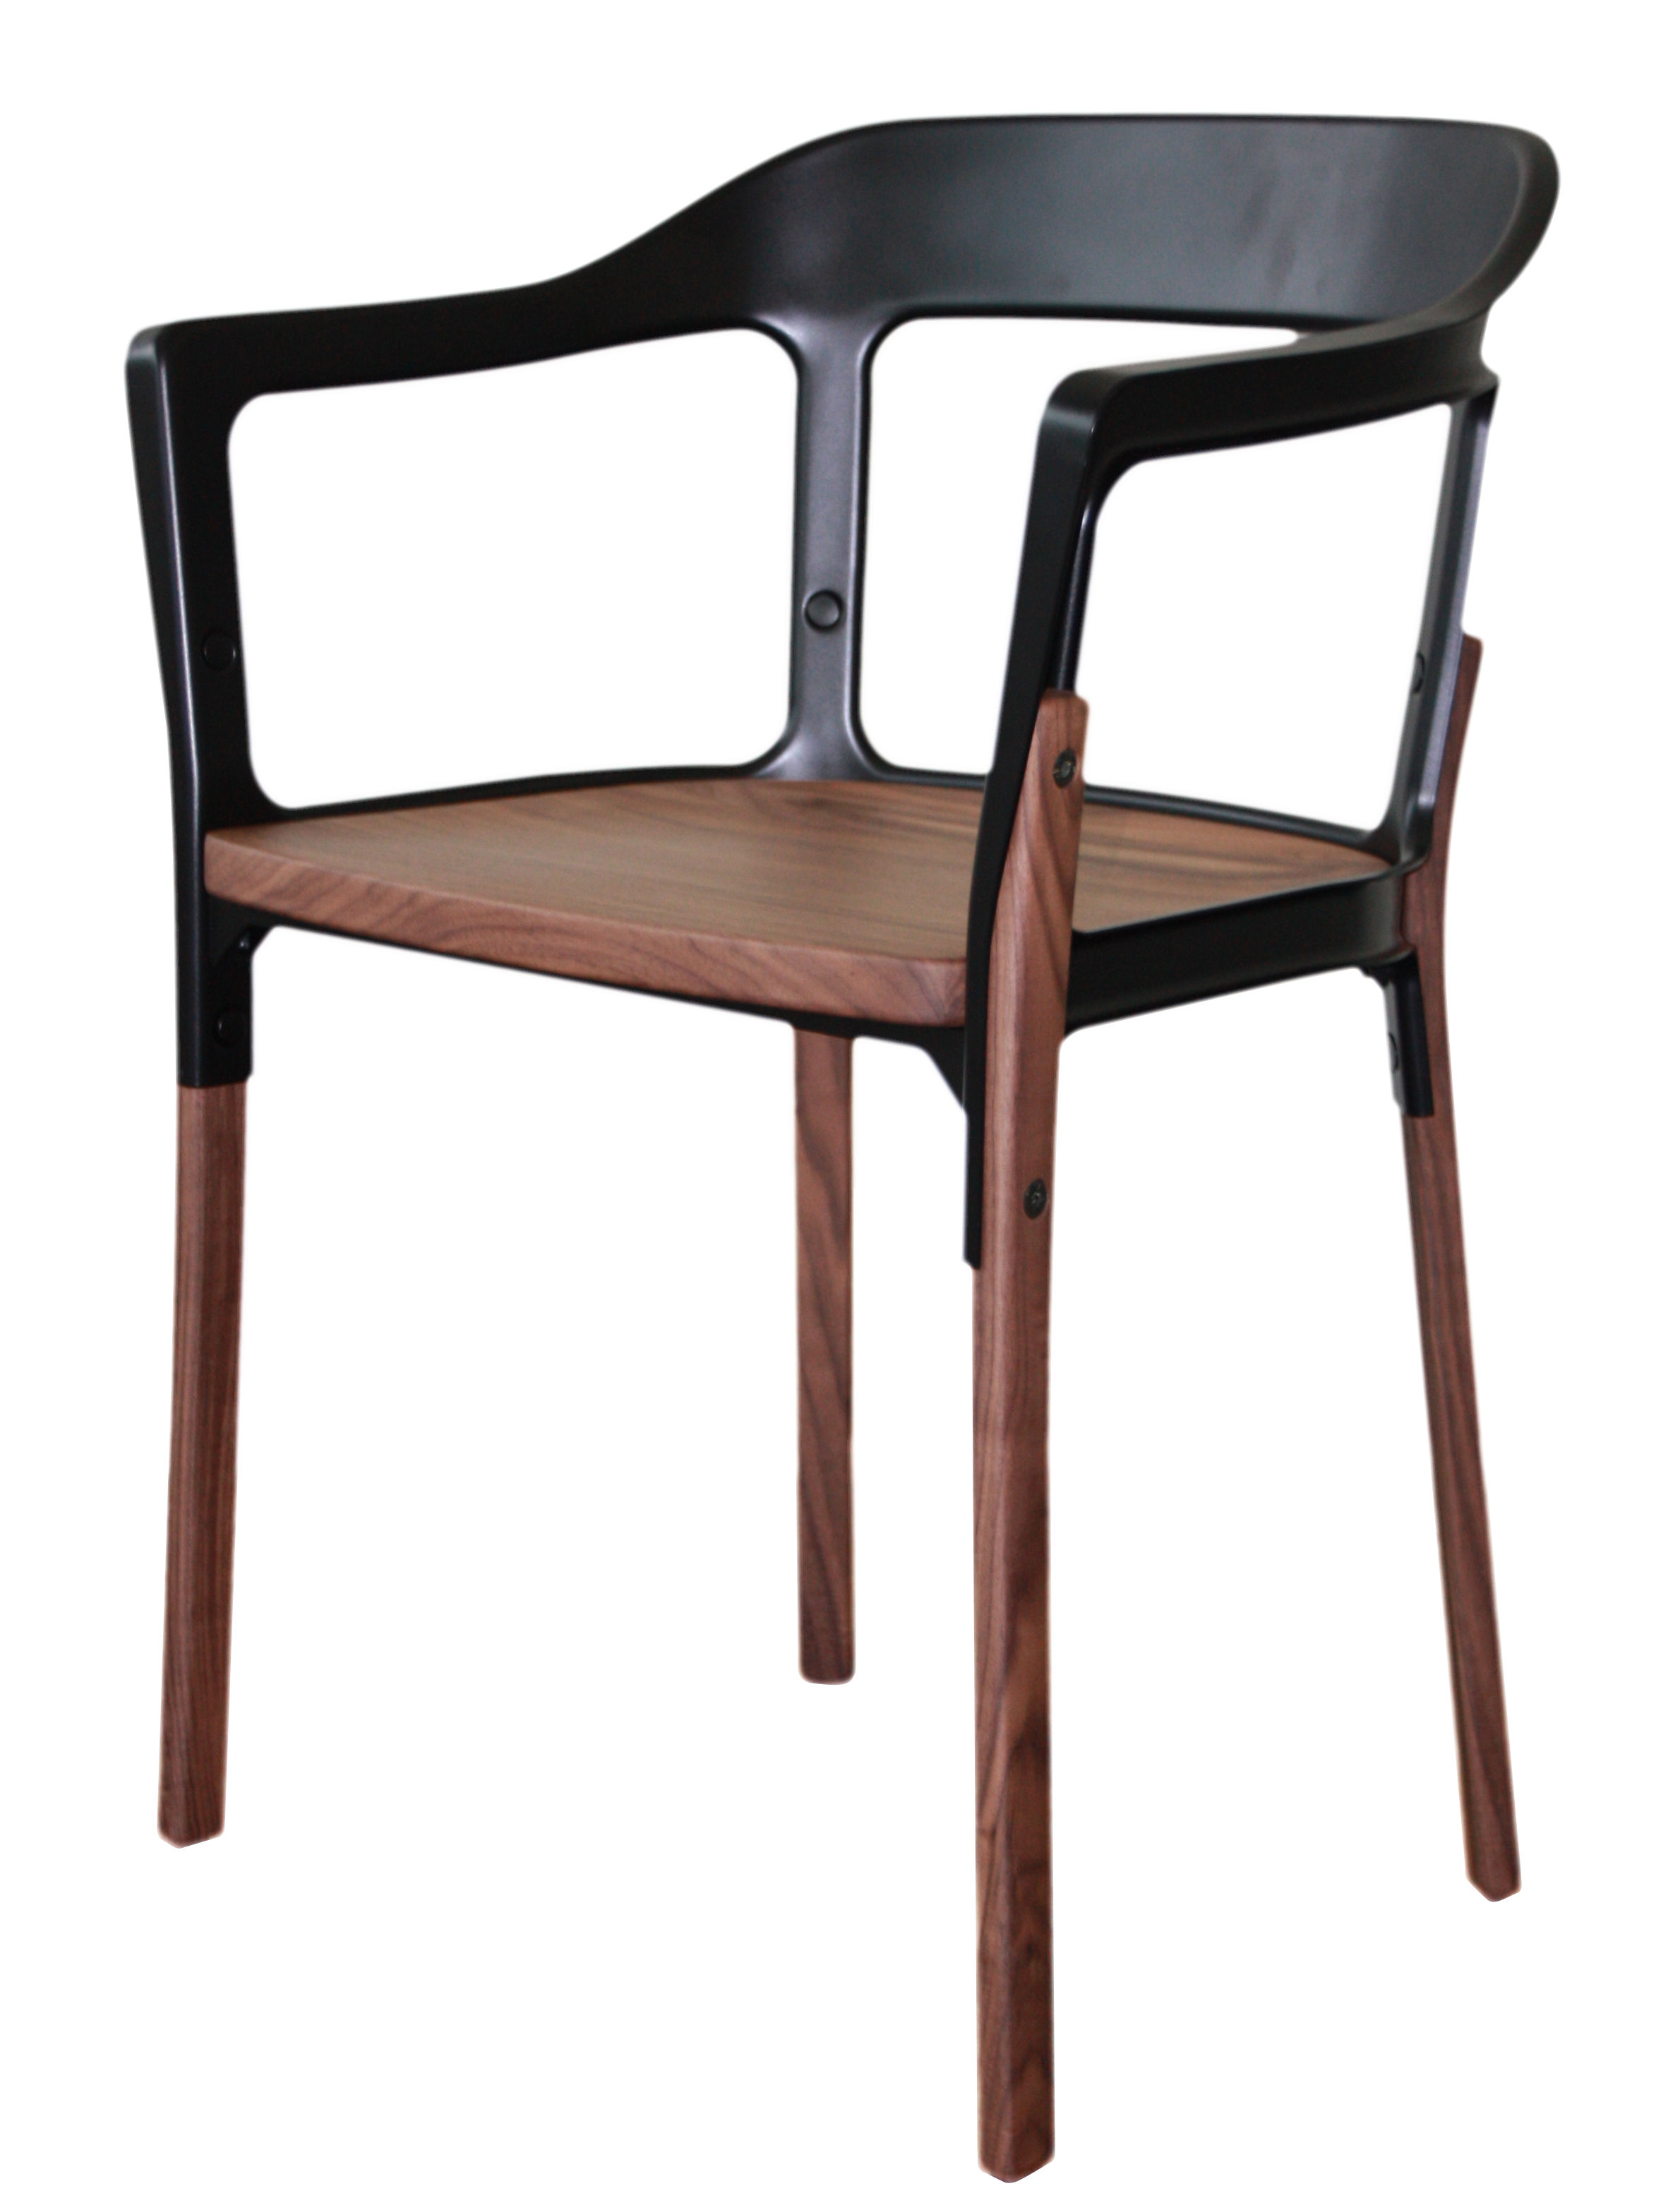 Armchair Steelwood By Magis Black Natural Wood Made In